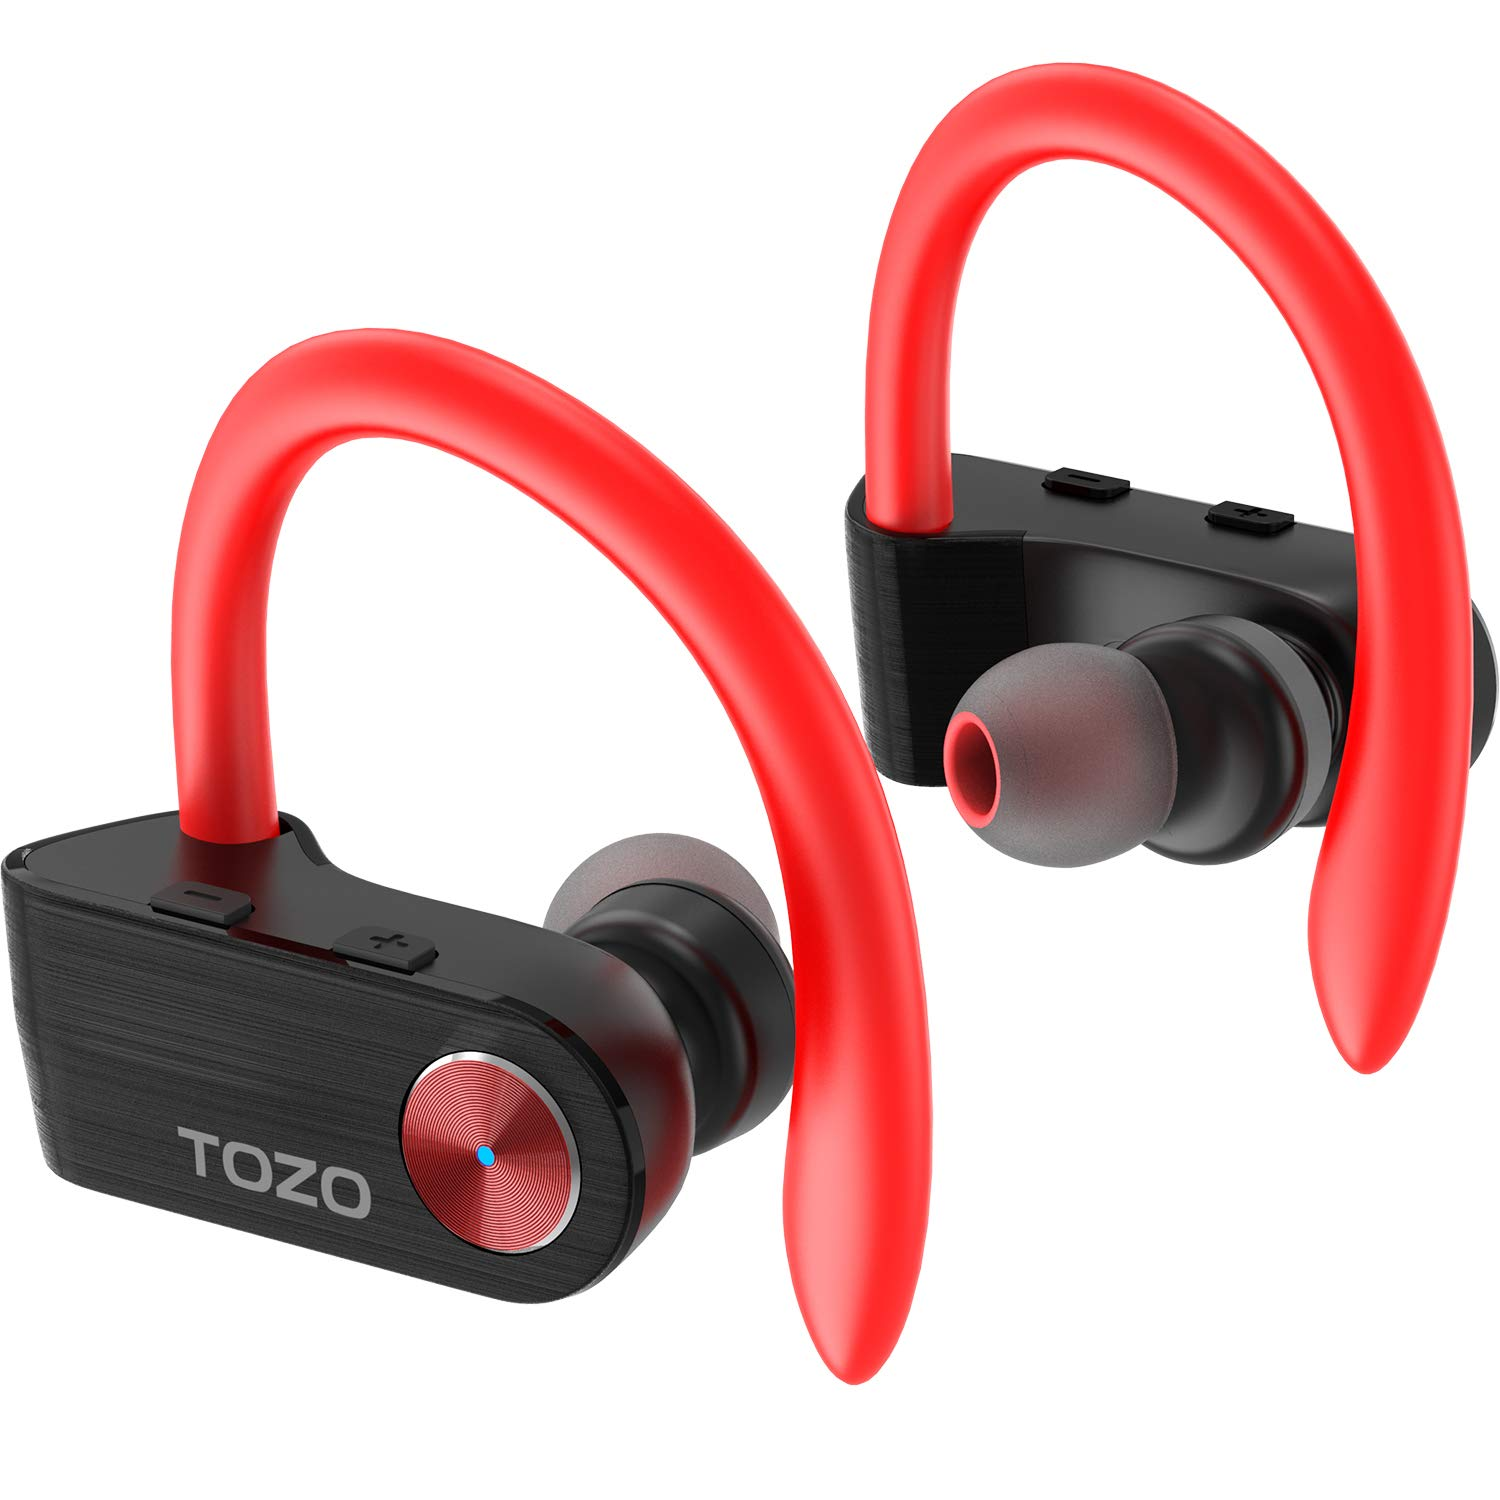 TOZO T5 TWS Bluetooth Headphones True Wireless Stereo Sport Earphones with Mi HD Sound with Bass Earbuds Noise Cancelling Headsets for Gym Running Workout Super Easy Pair